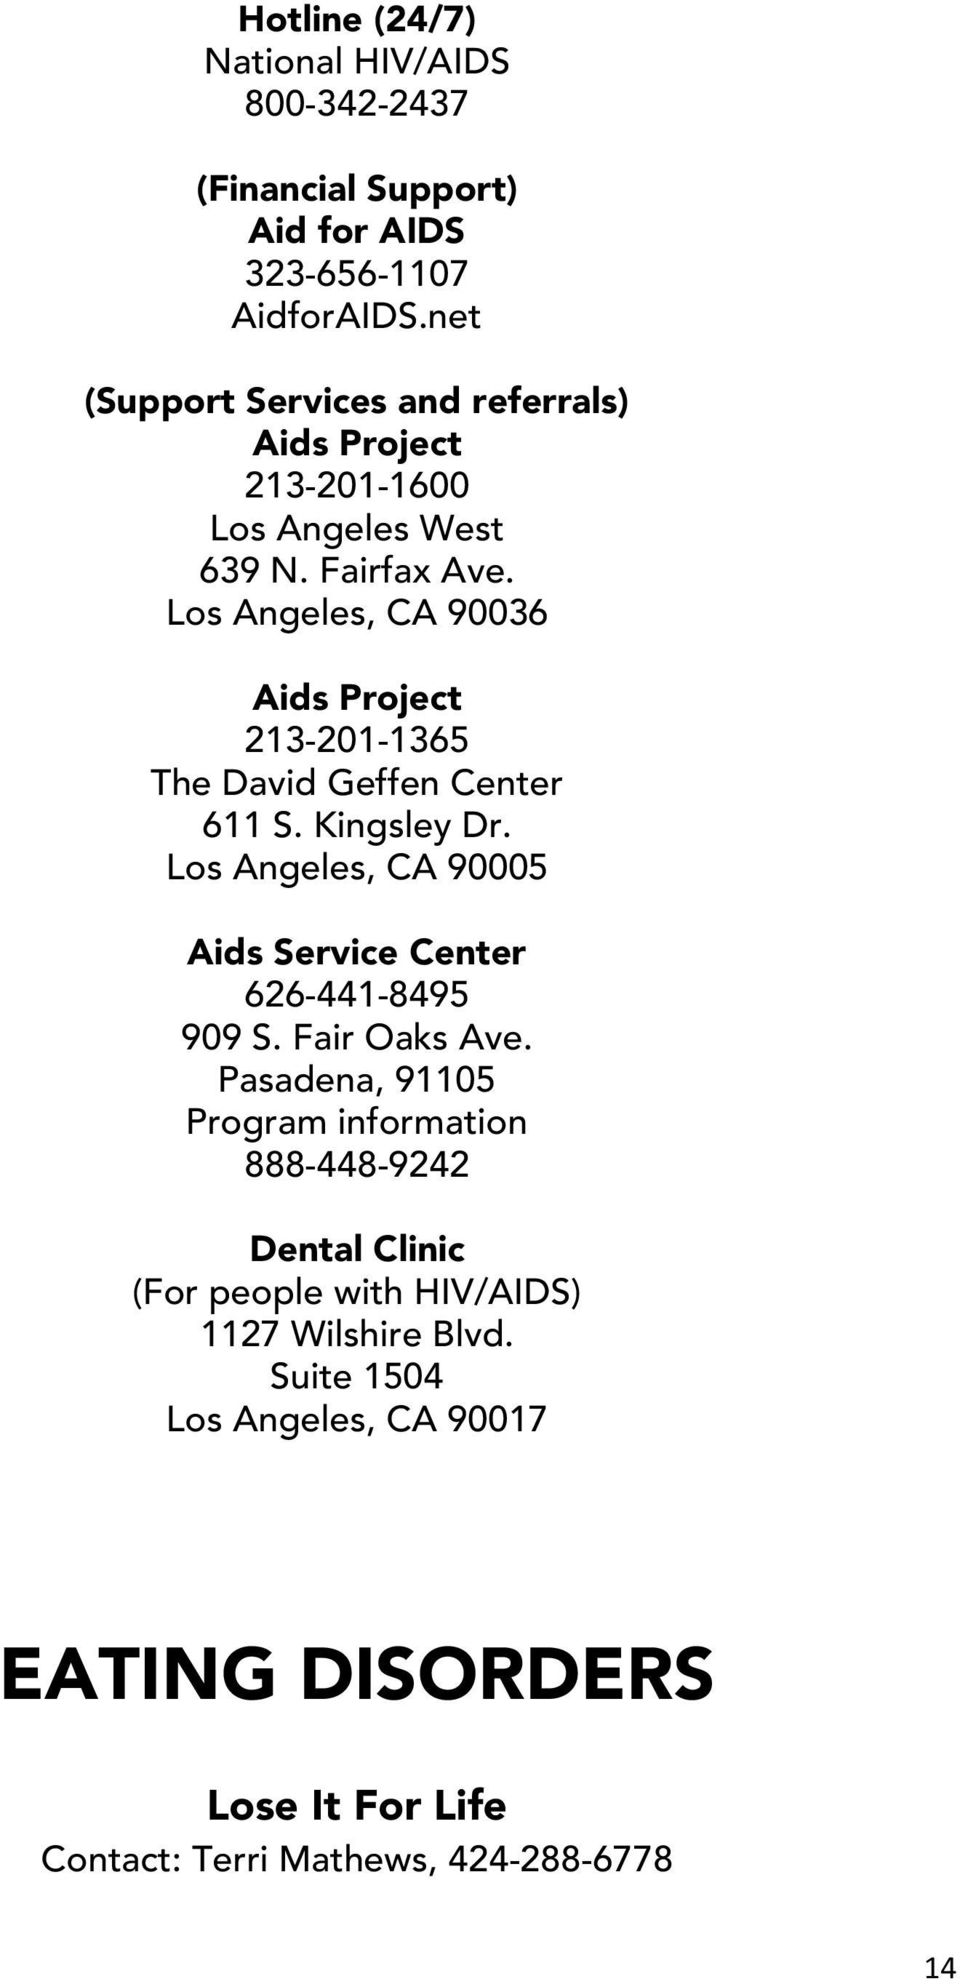 Los Angeles, CA 90036 Aids Project 213-201-1365 The David Geffen Center 611 S. Kingsley Dr.